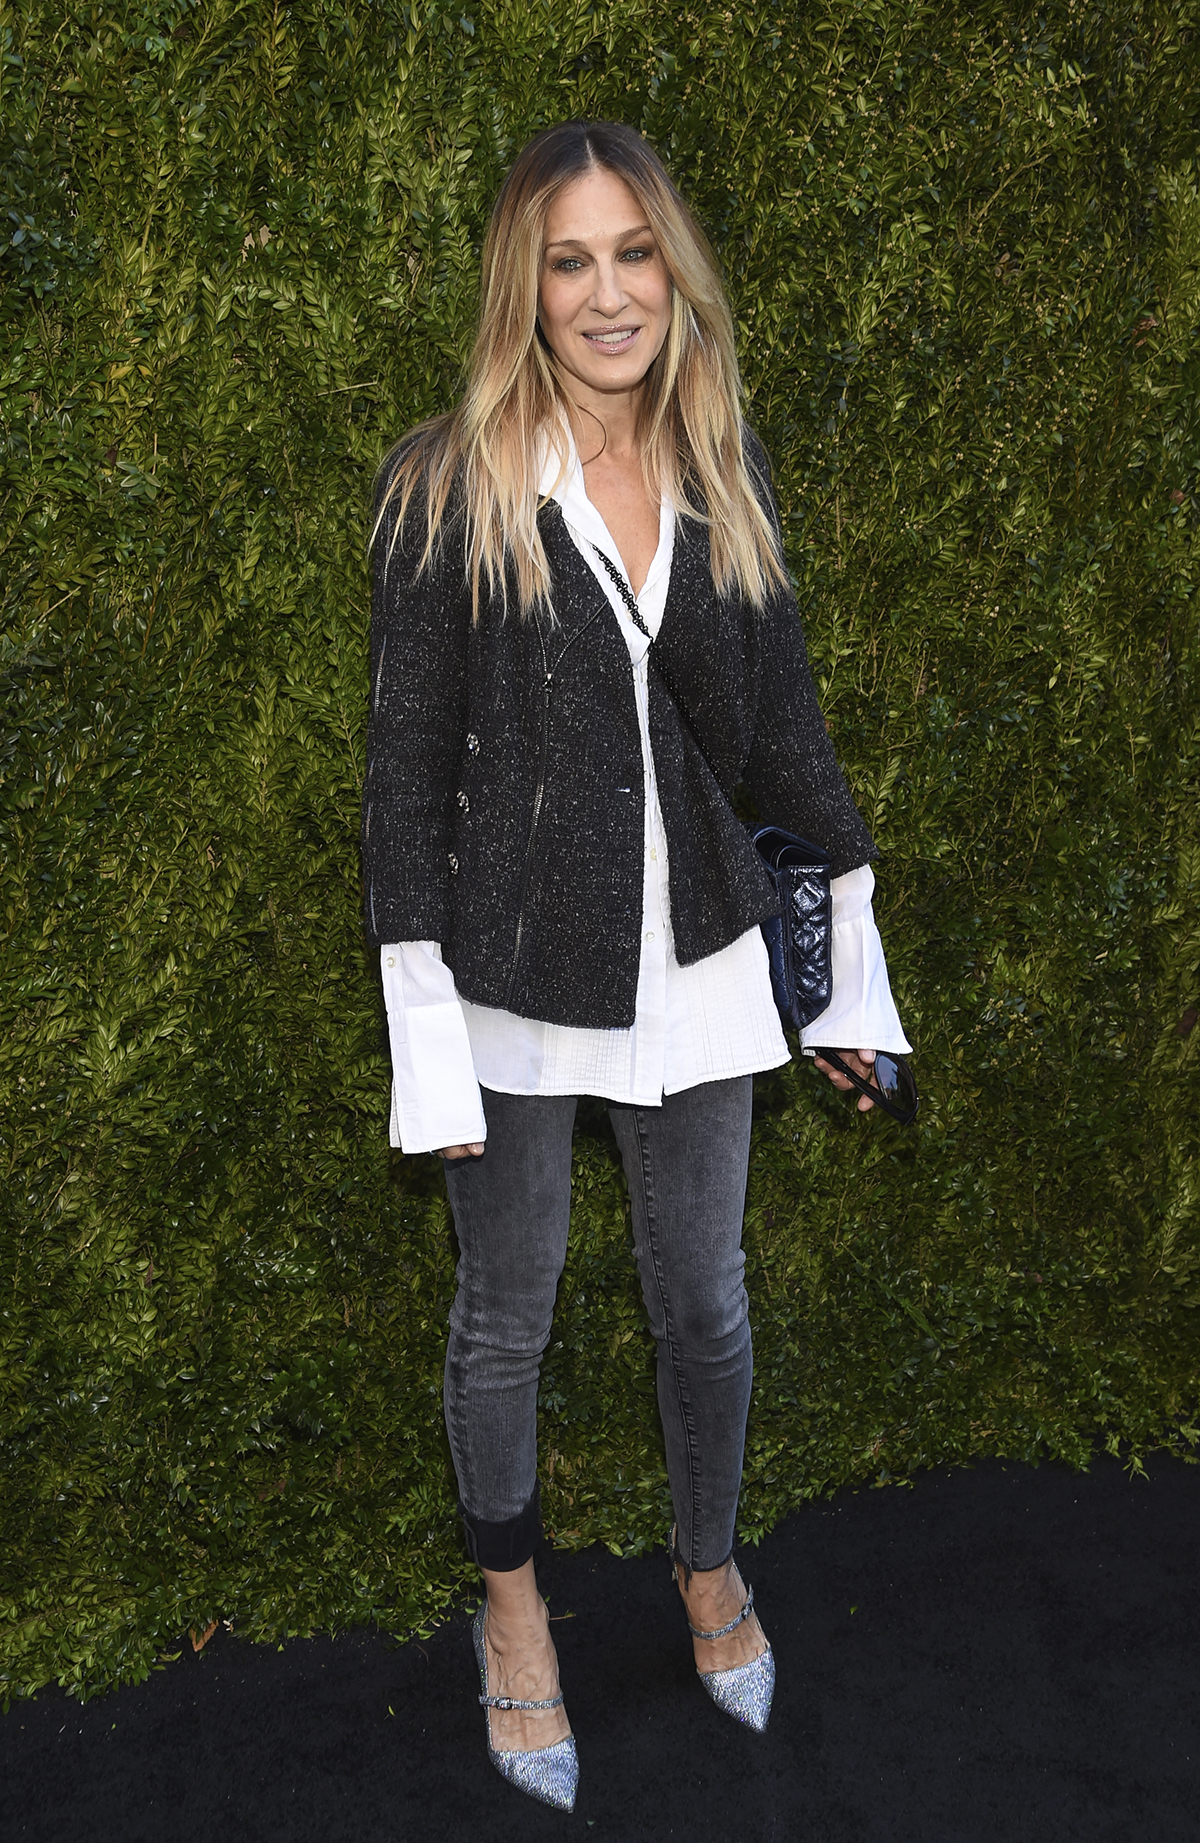 Actress Sarah Jessica Parker attends the 2018 Chanel Tribeca Film Festival Women Filmmakers Luncheon at Odeon on Friday, April 20, 2018 in New York.. Los tonos grises que SÍ son de primavera los lleva Sarah Jessica Parker